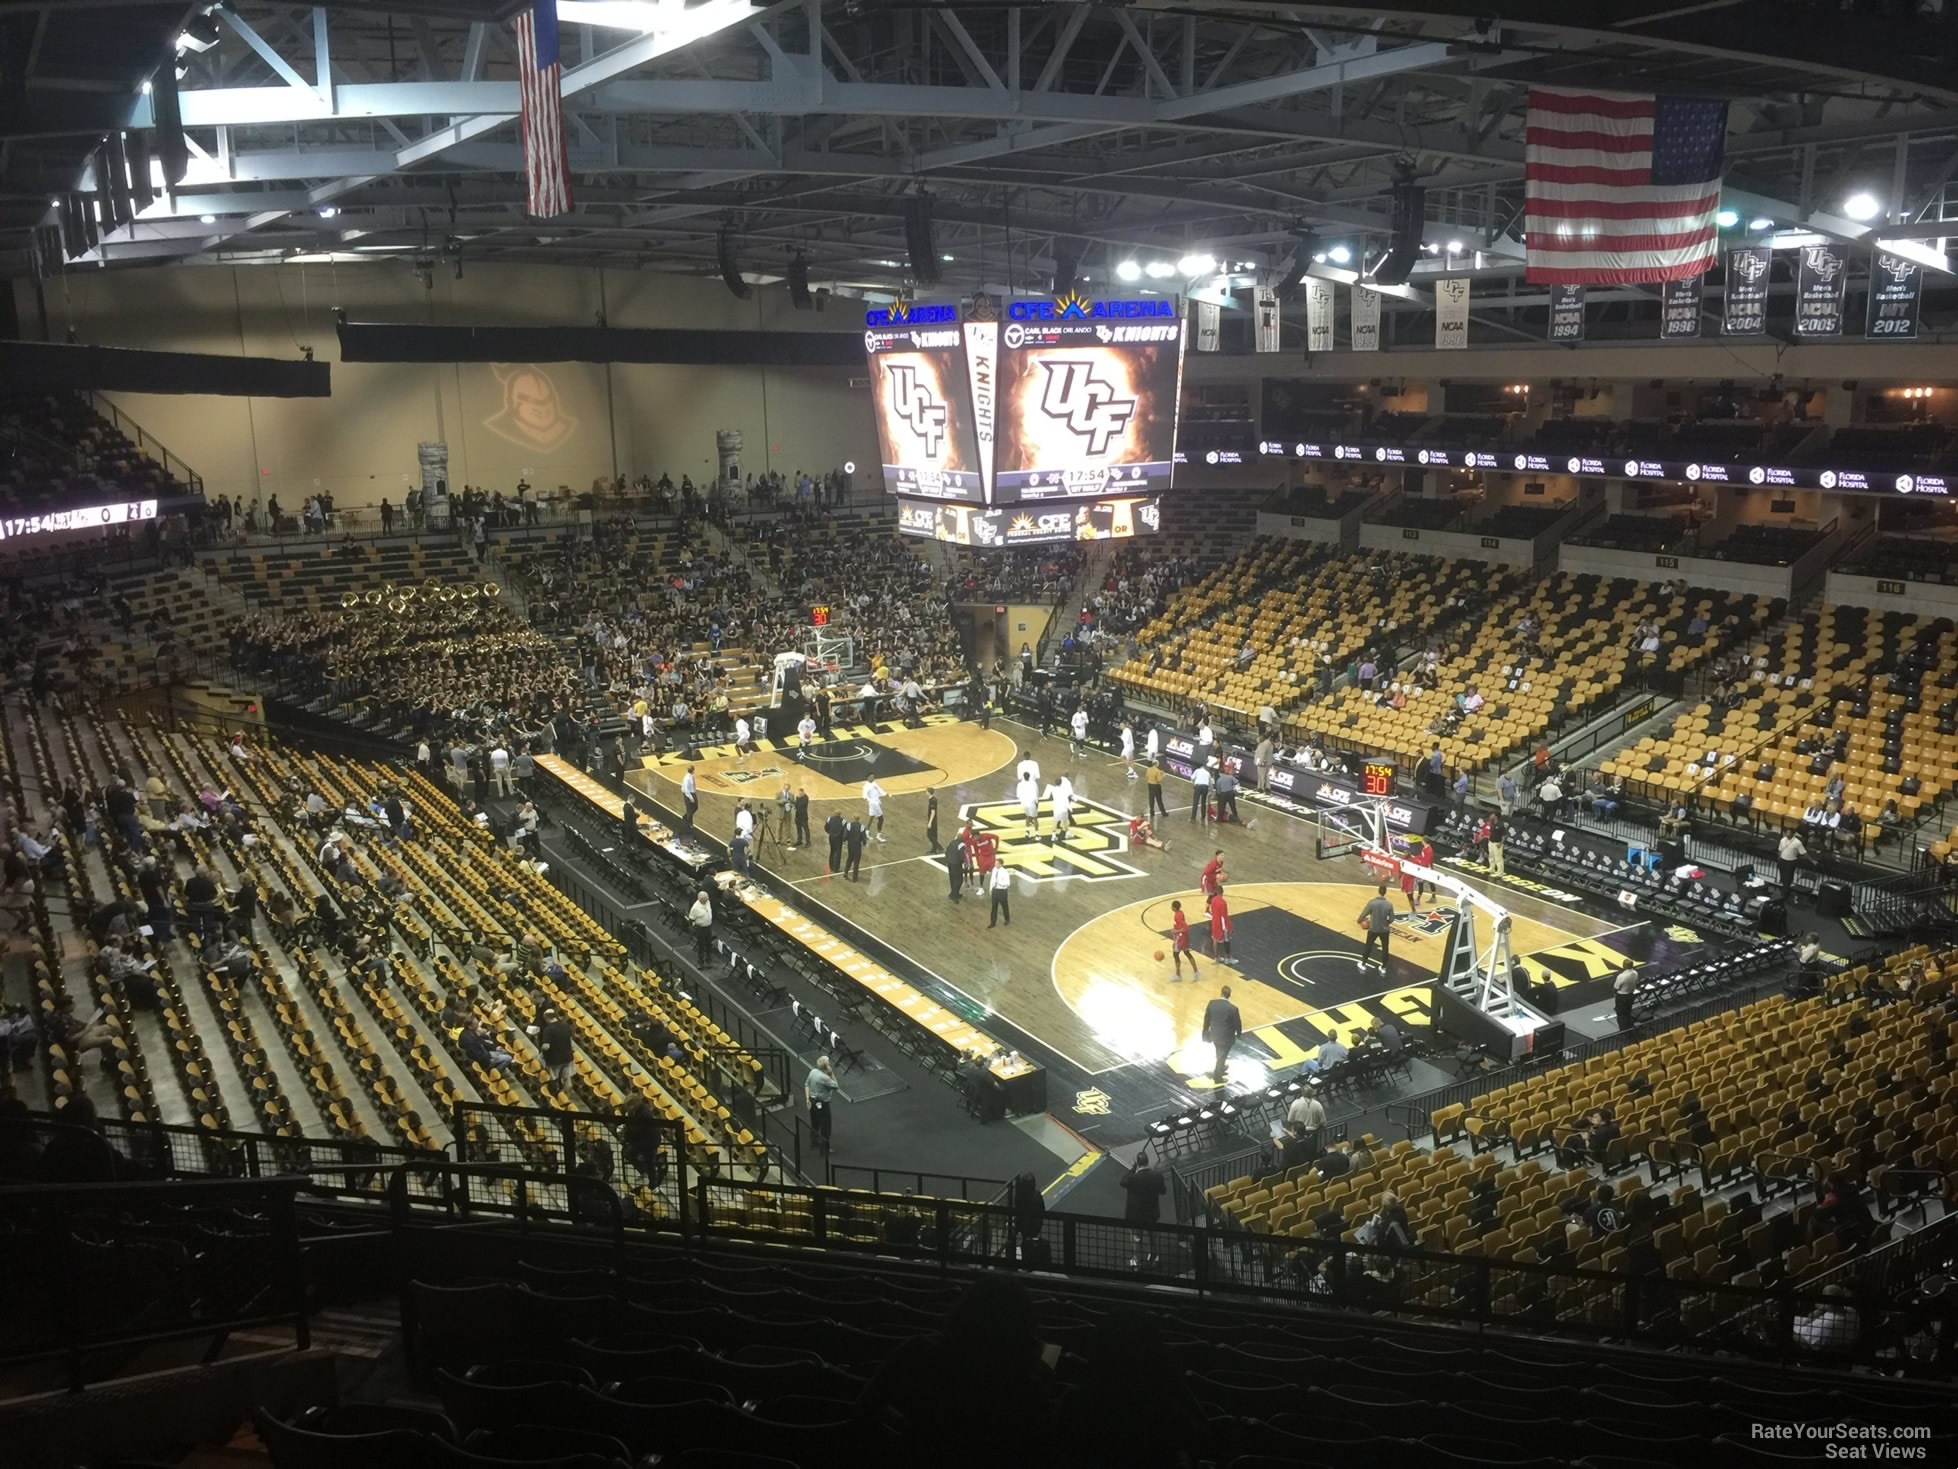 CFE: Ucf Arena Seating Chart Rows